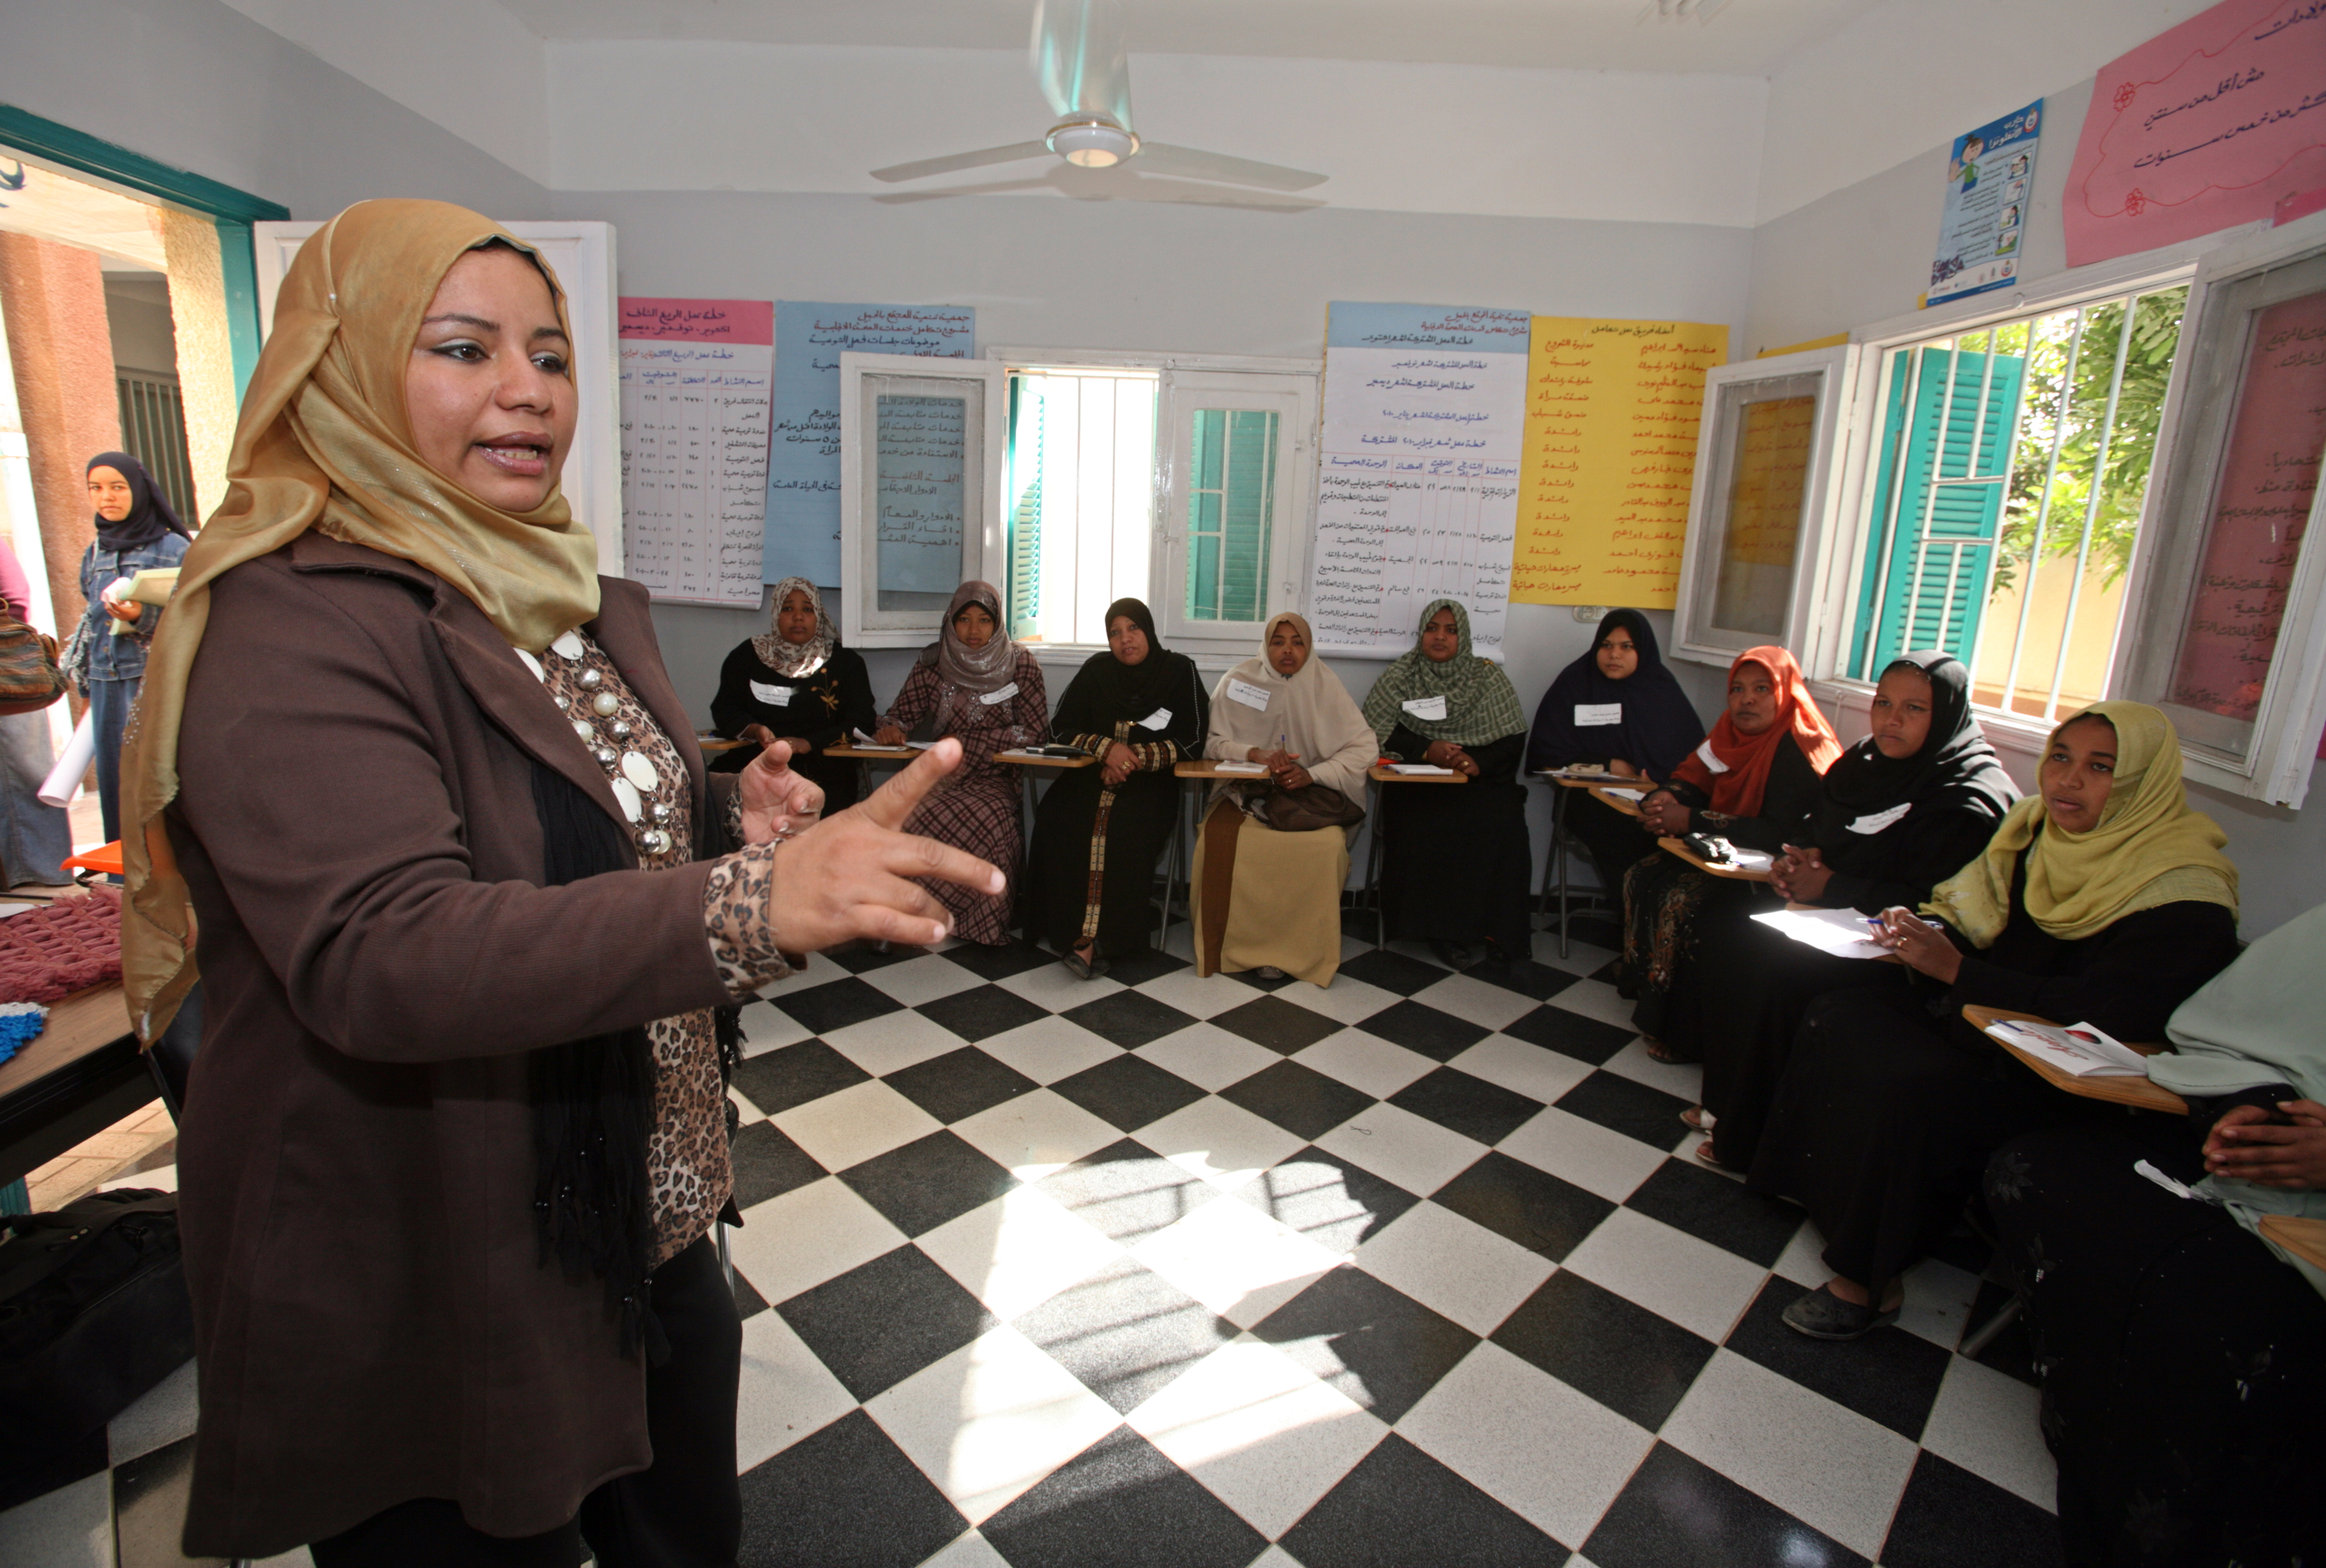 Image of female Community Development Worker in Egypt speaking to an audience of women.